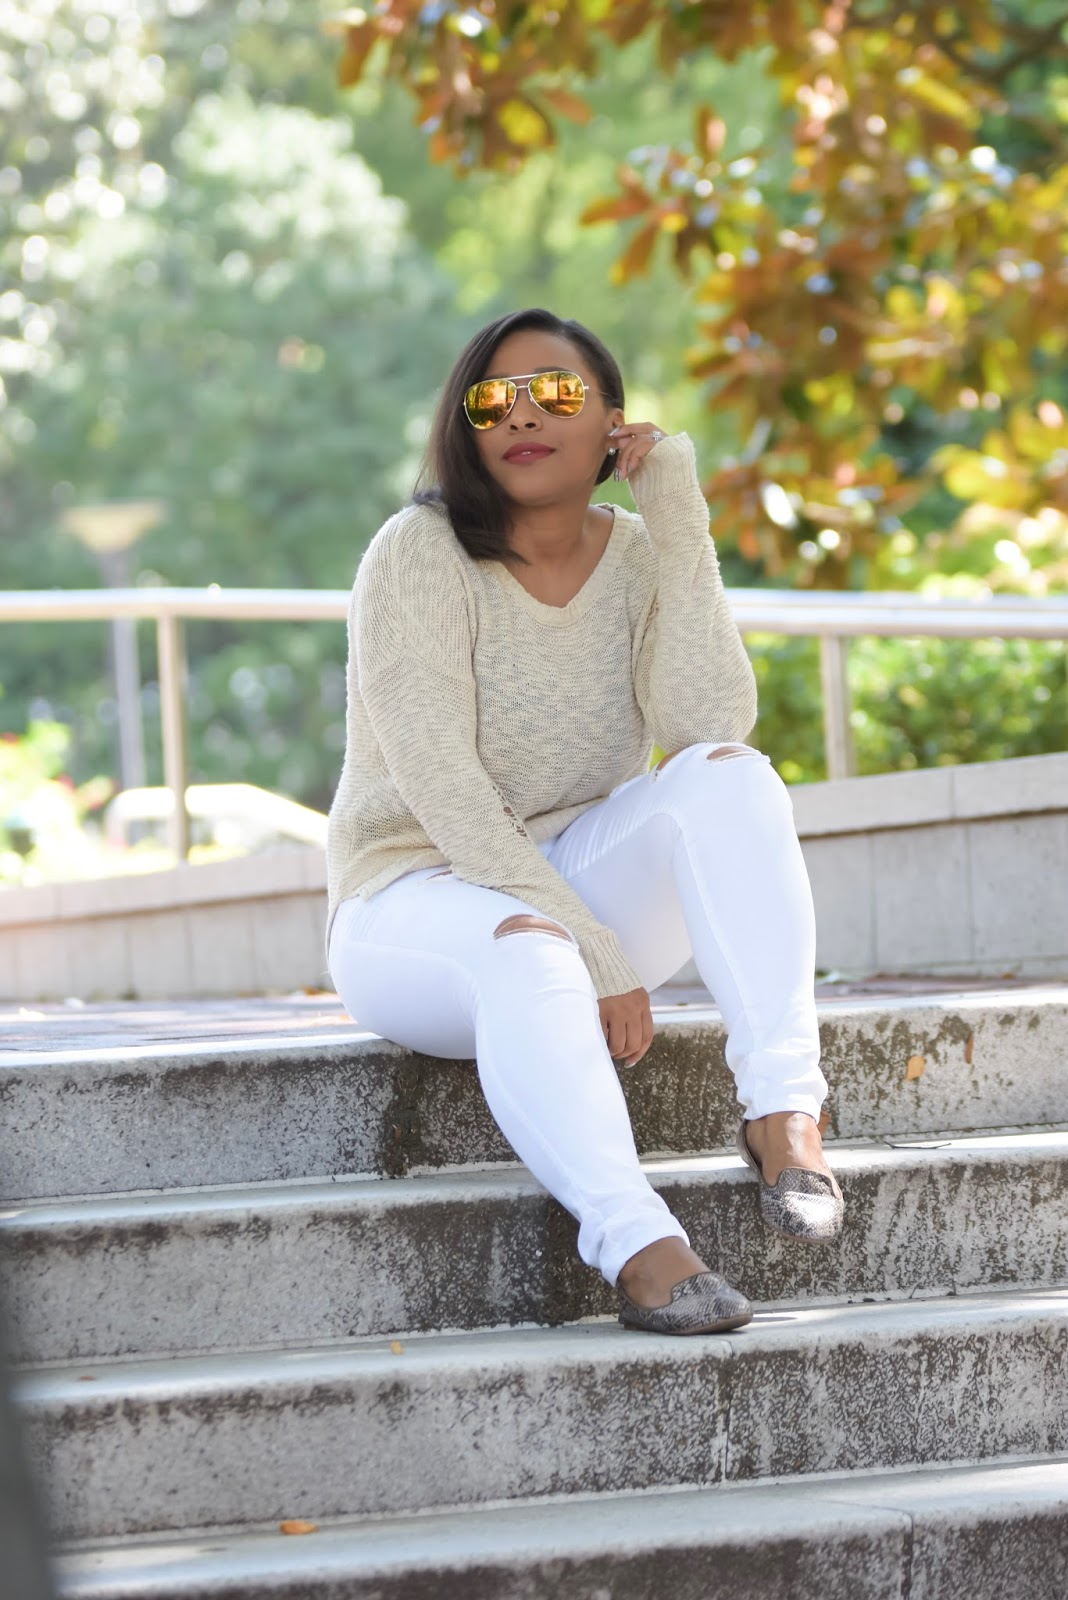 4 Ways To Wear White Jeans This Fall, clorox, bleach, how to bleach clothes, white denim, ripped denim, fall outfit ideas, laundry, white after labor day